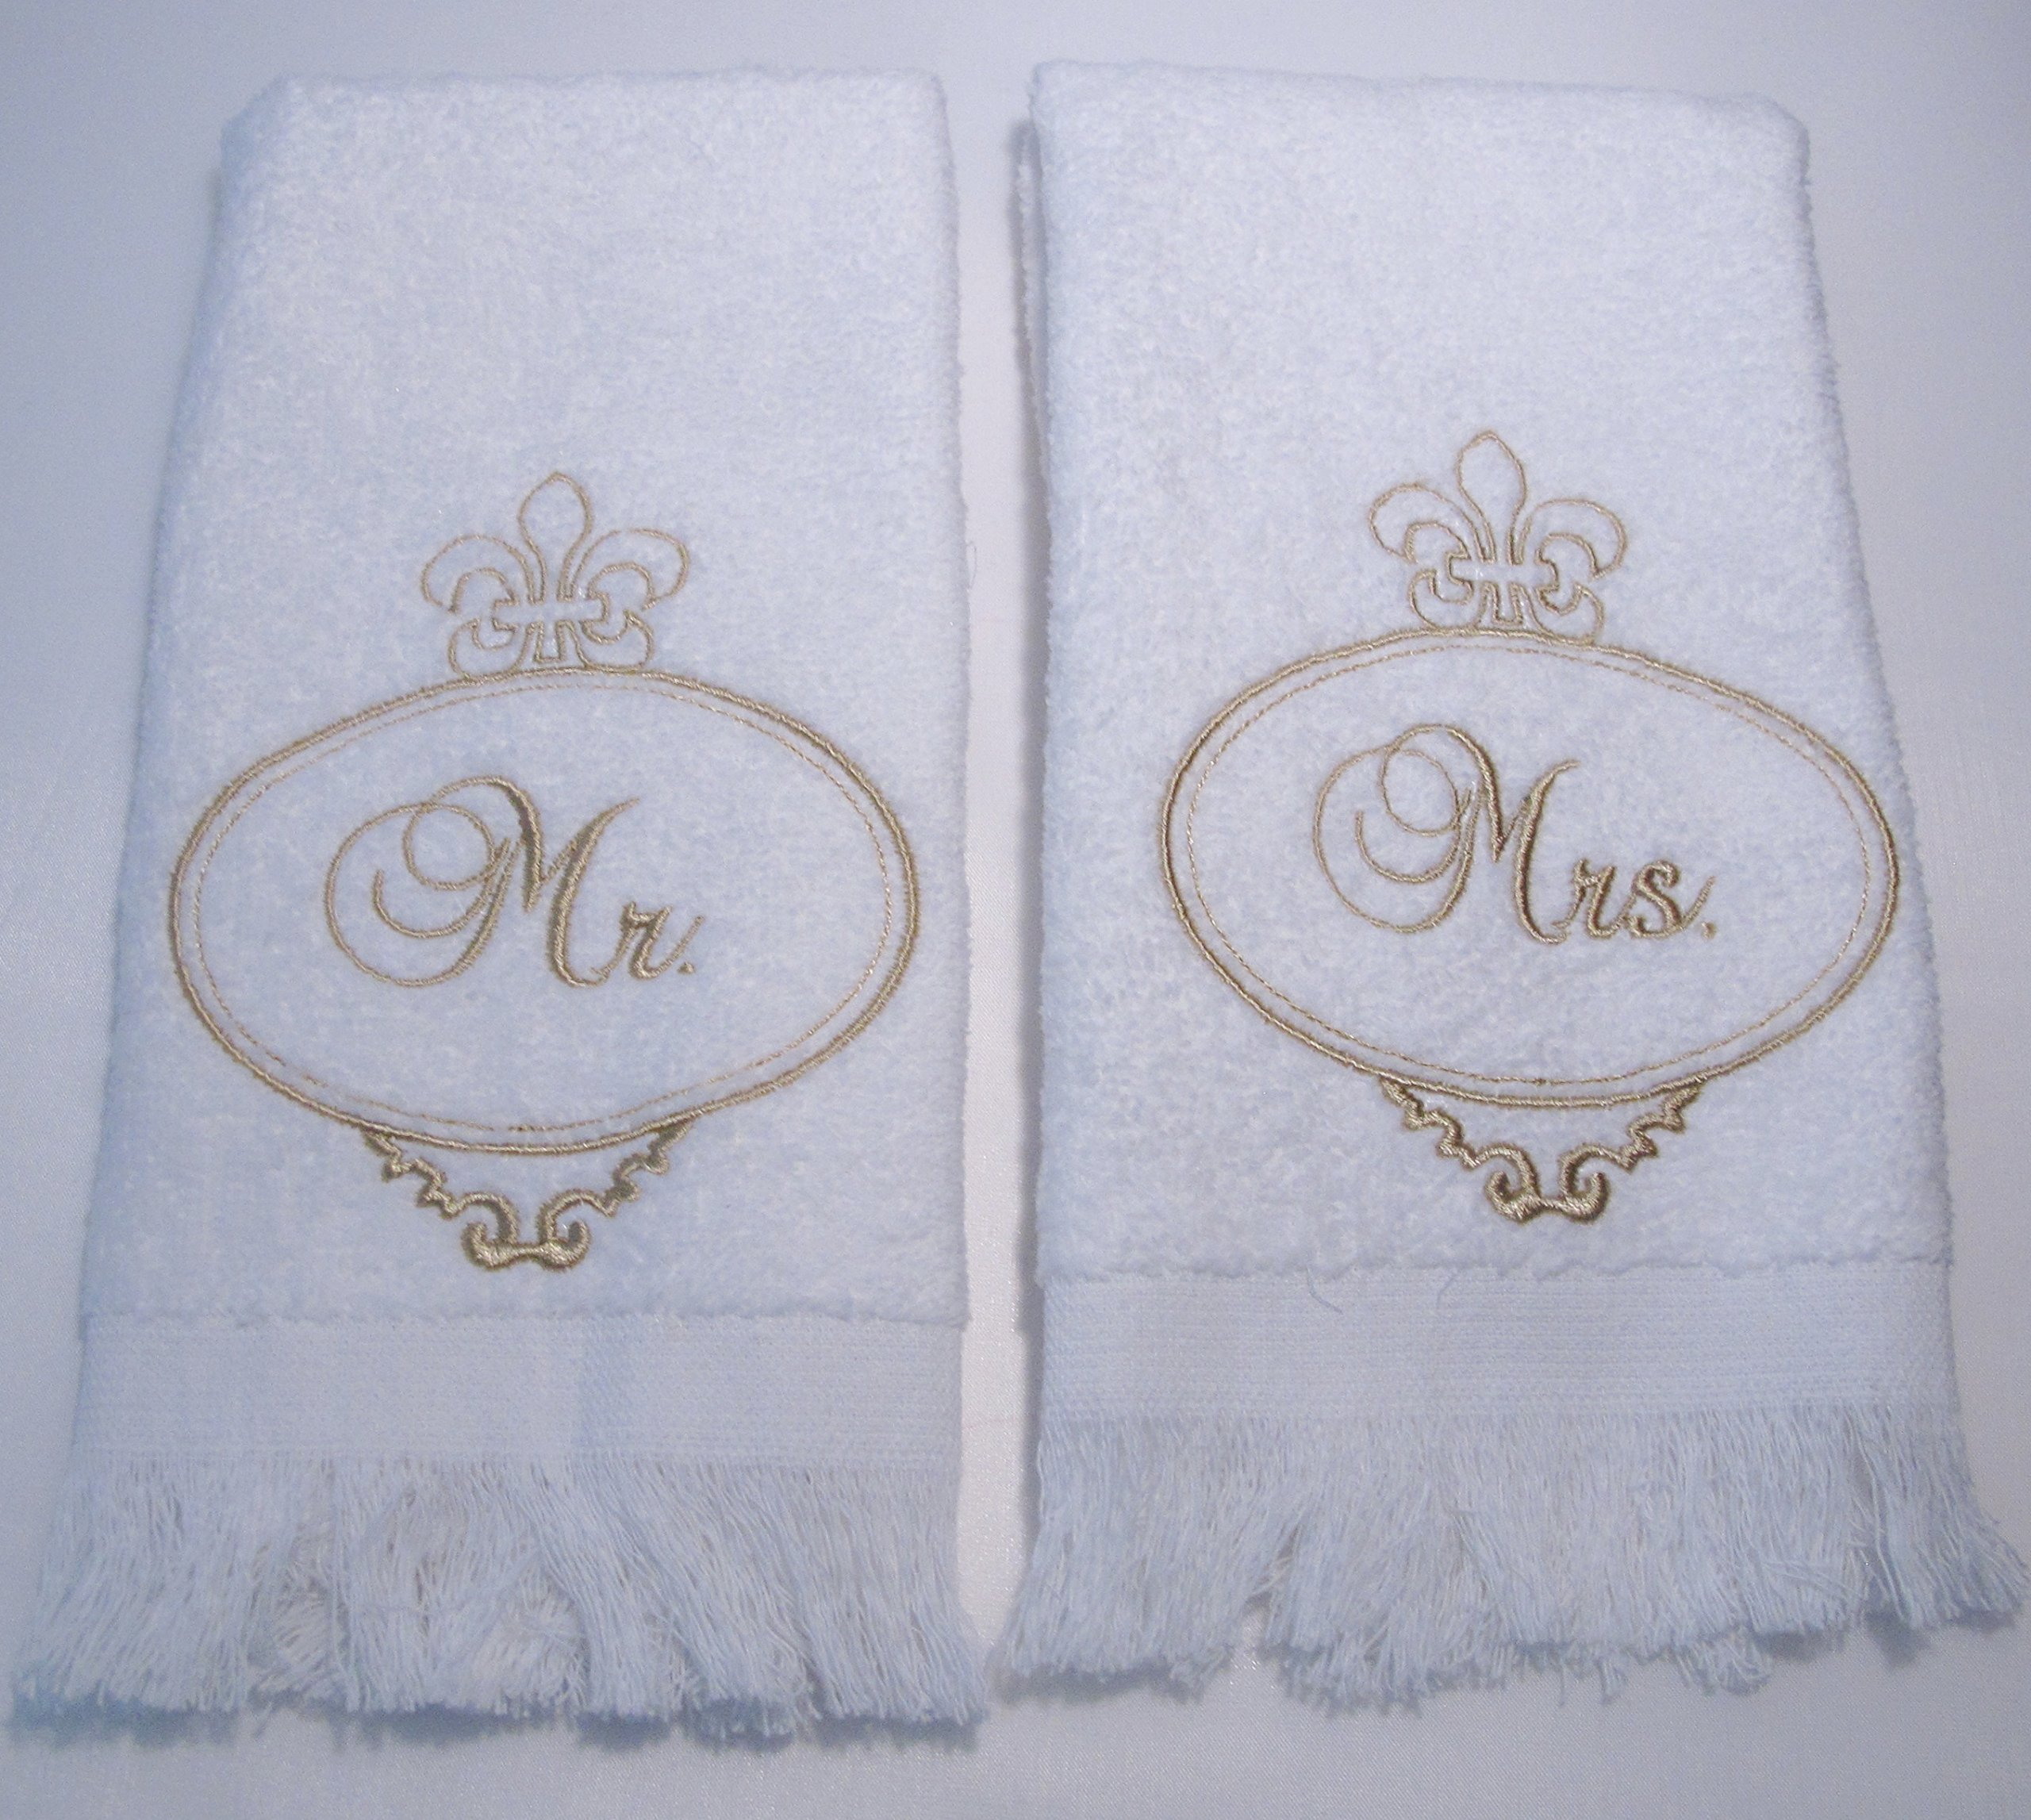 MR & MRS TOWEL SET (GOLD) EMBROIDERY ~ WEDDING GIFT